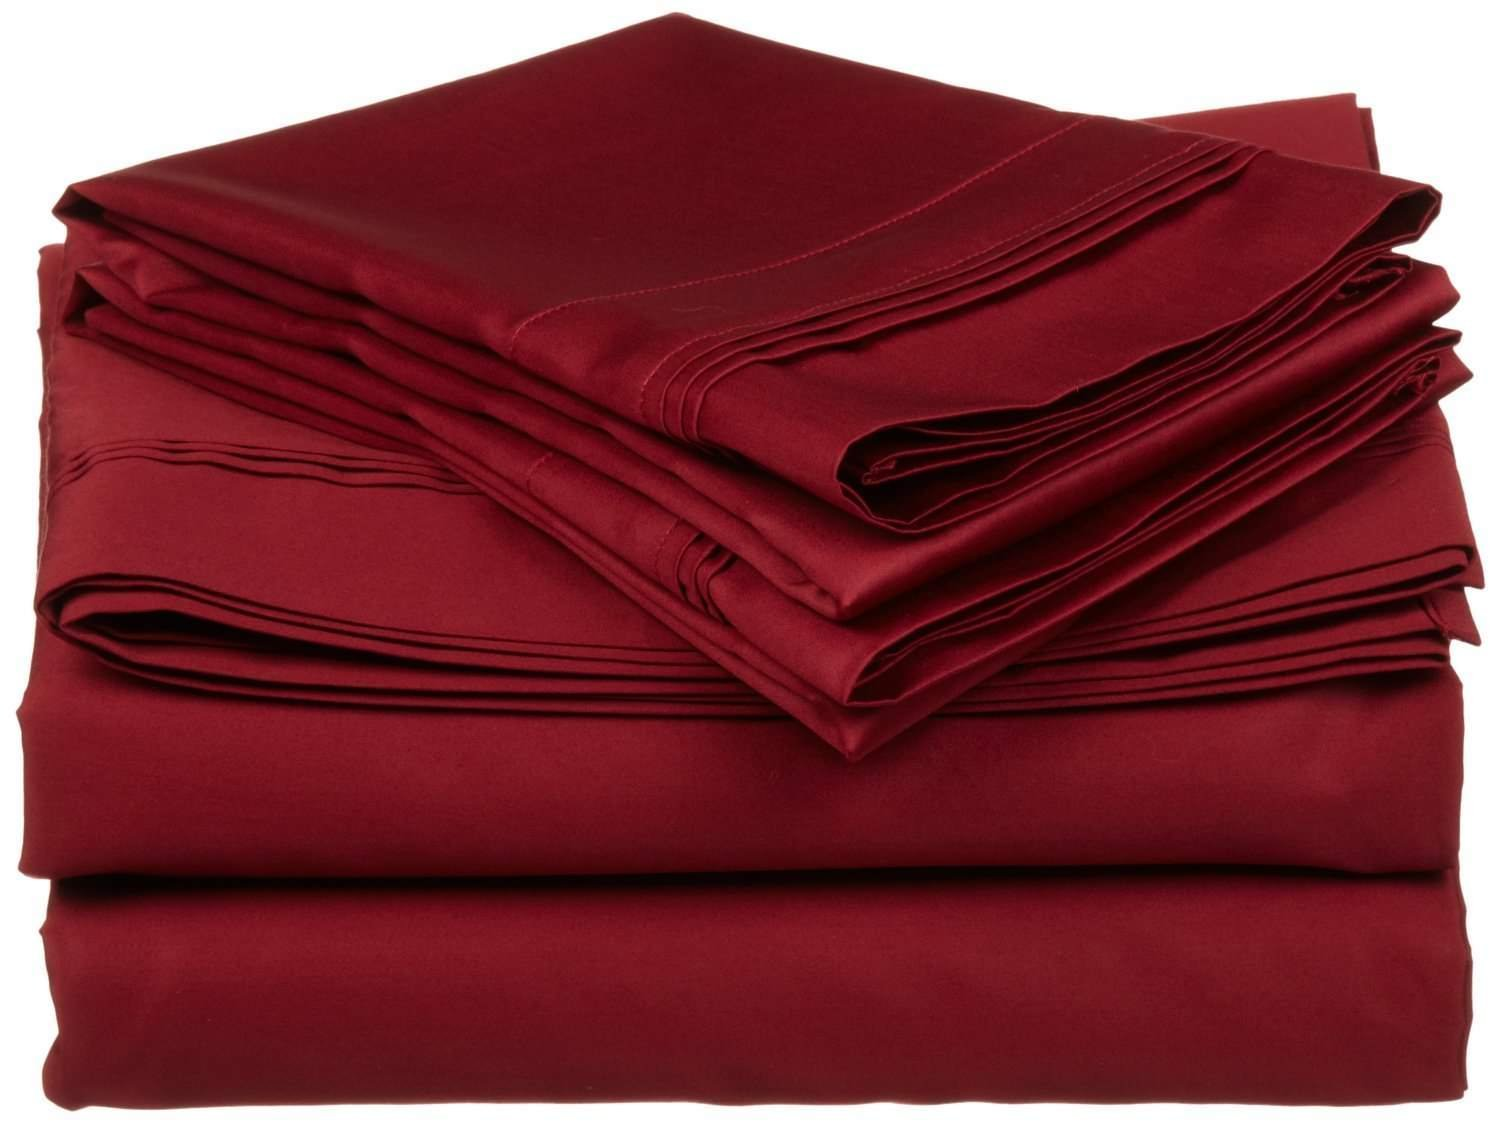 400 Thread Count 4 Piece Set Queen Size Sheets Set Burgundy Long Staple Combed Pure Natural 100% Cotton Sheet Set deep Pocket fits Upto 15 inch Soft & Silky Sateen Weave Bedding Set